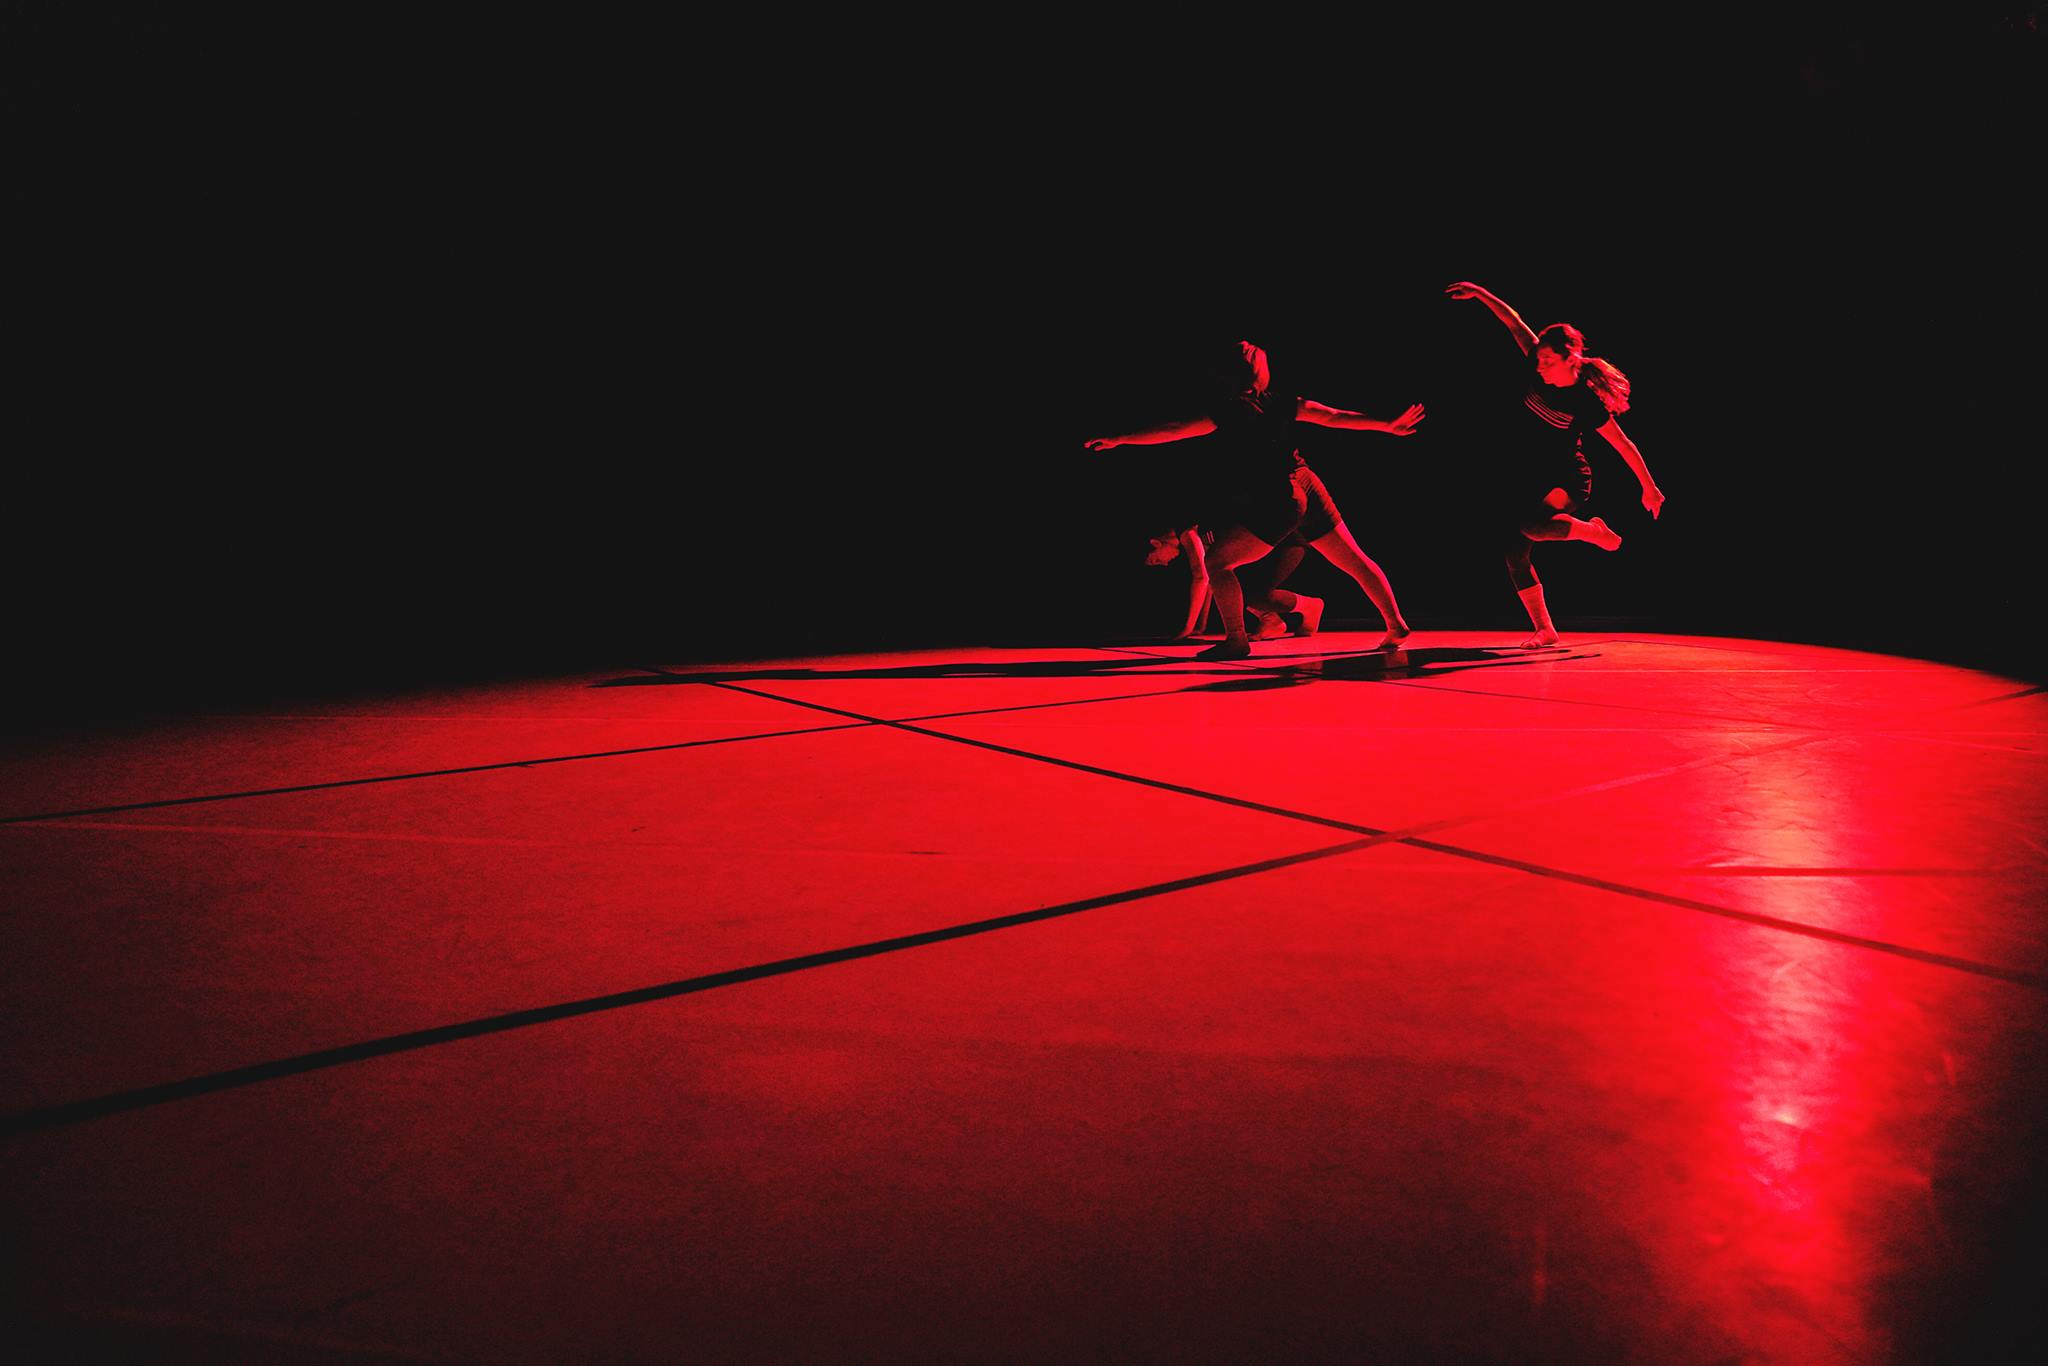 three dancers move on a red lit floor